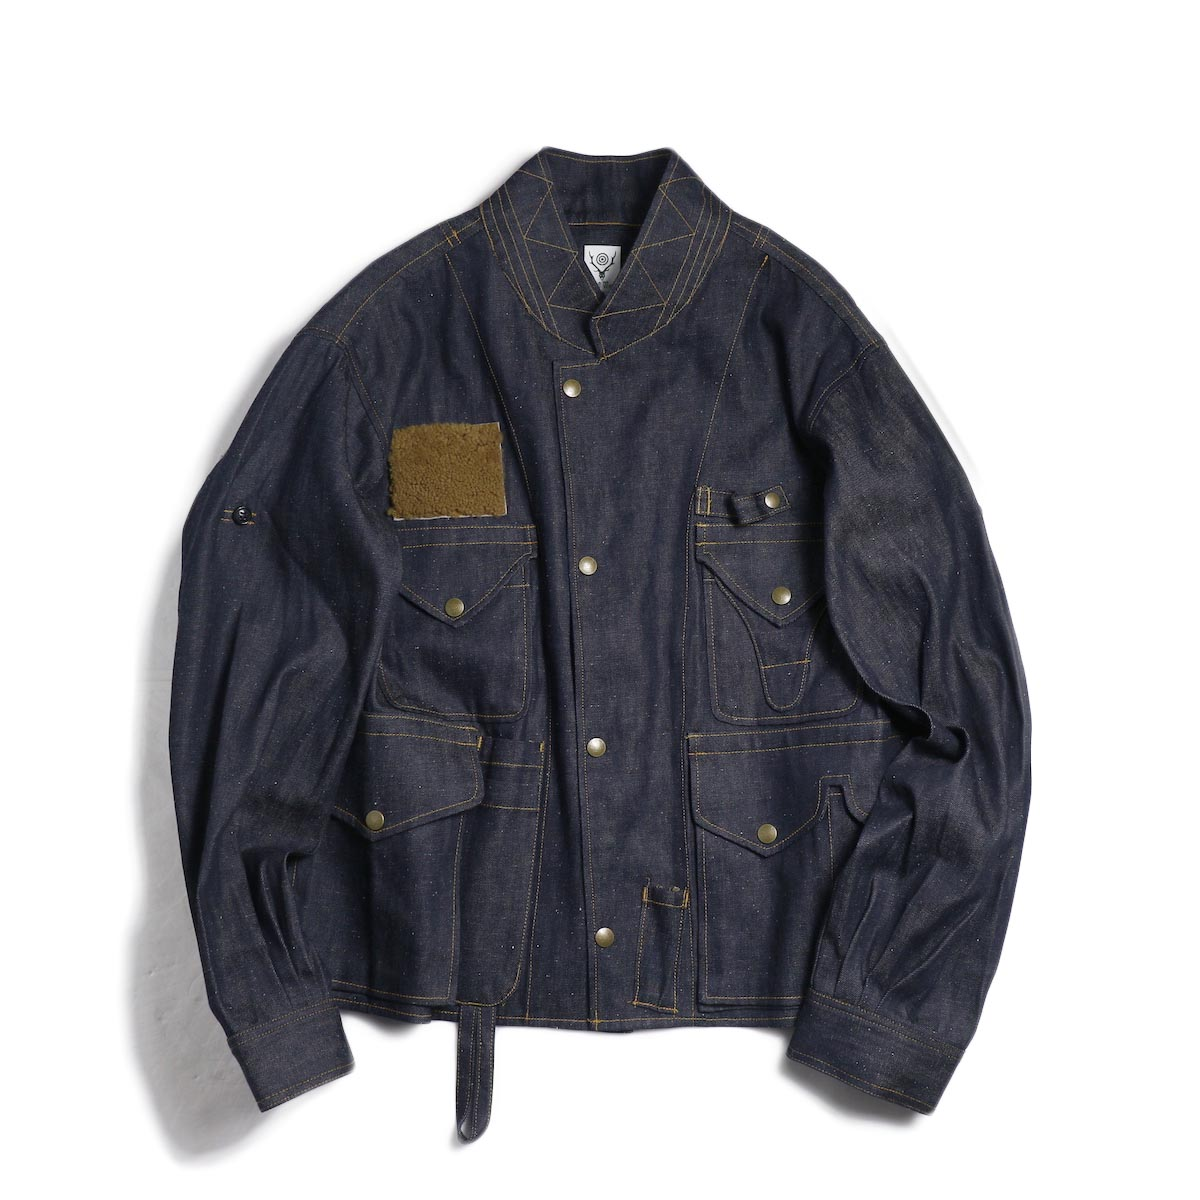 SOUTH2 WEST8 / E.H. Fishing Jacket -C/L 8.5oz Denim